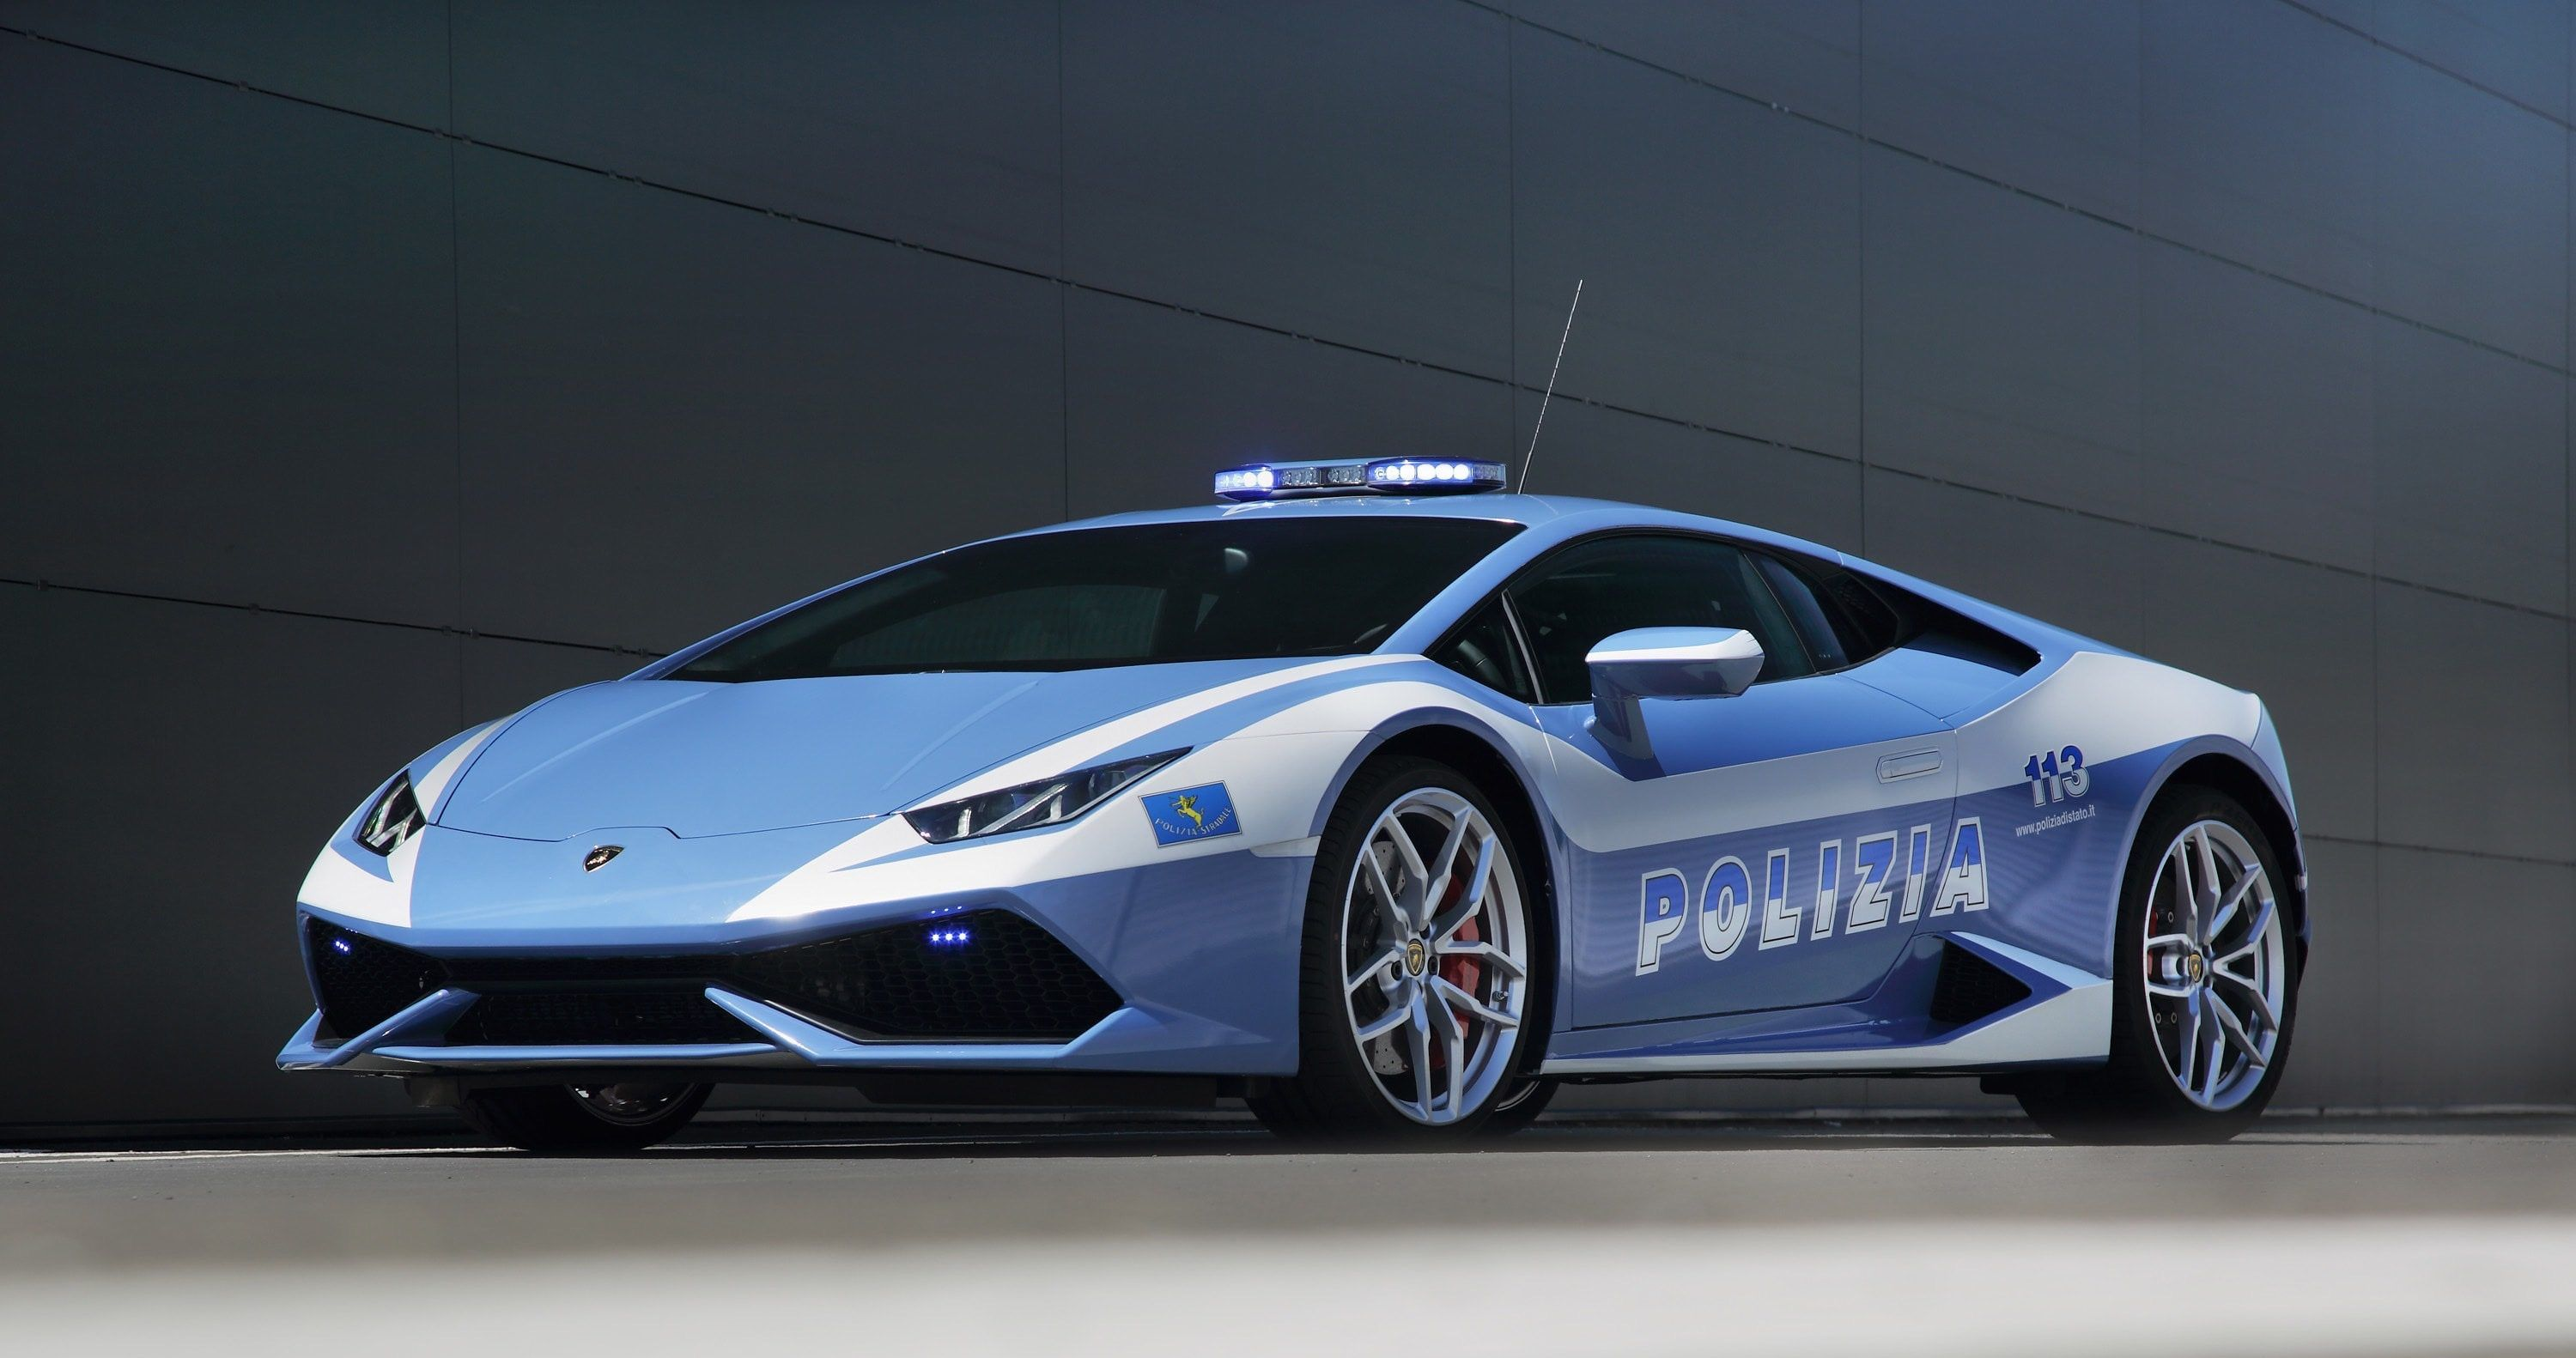 10 Weirdest Facts About Modern Police Cars Nobody Knows About